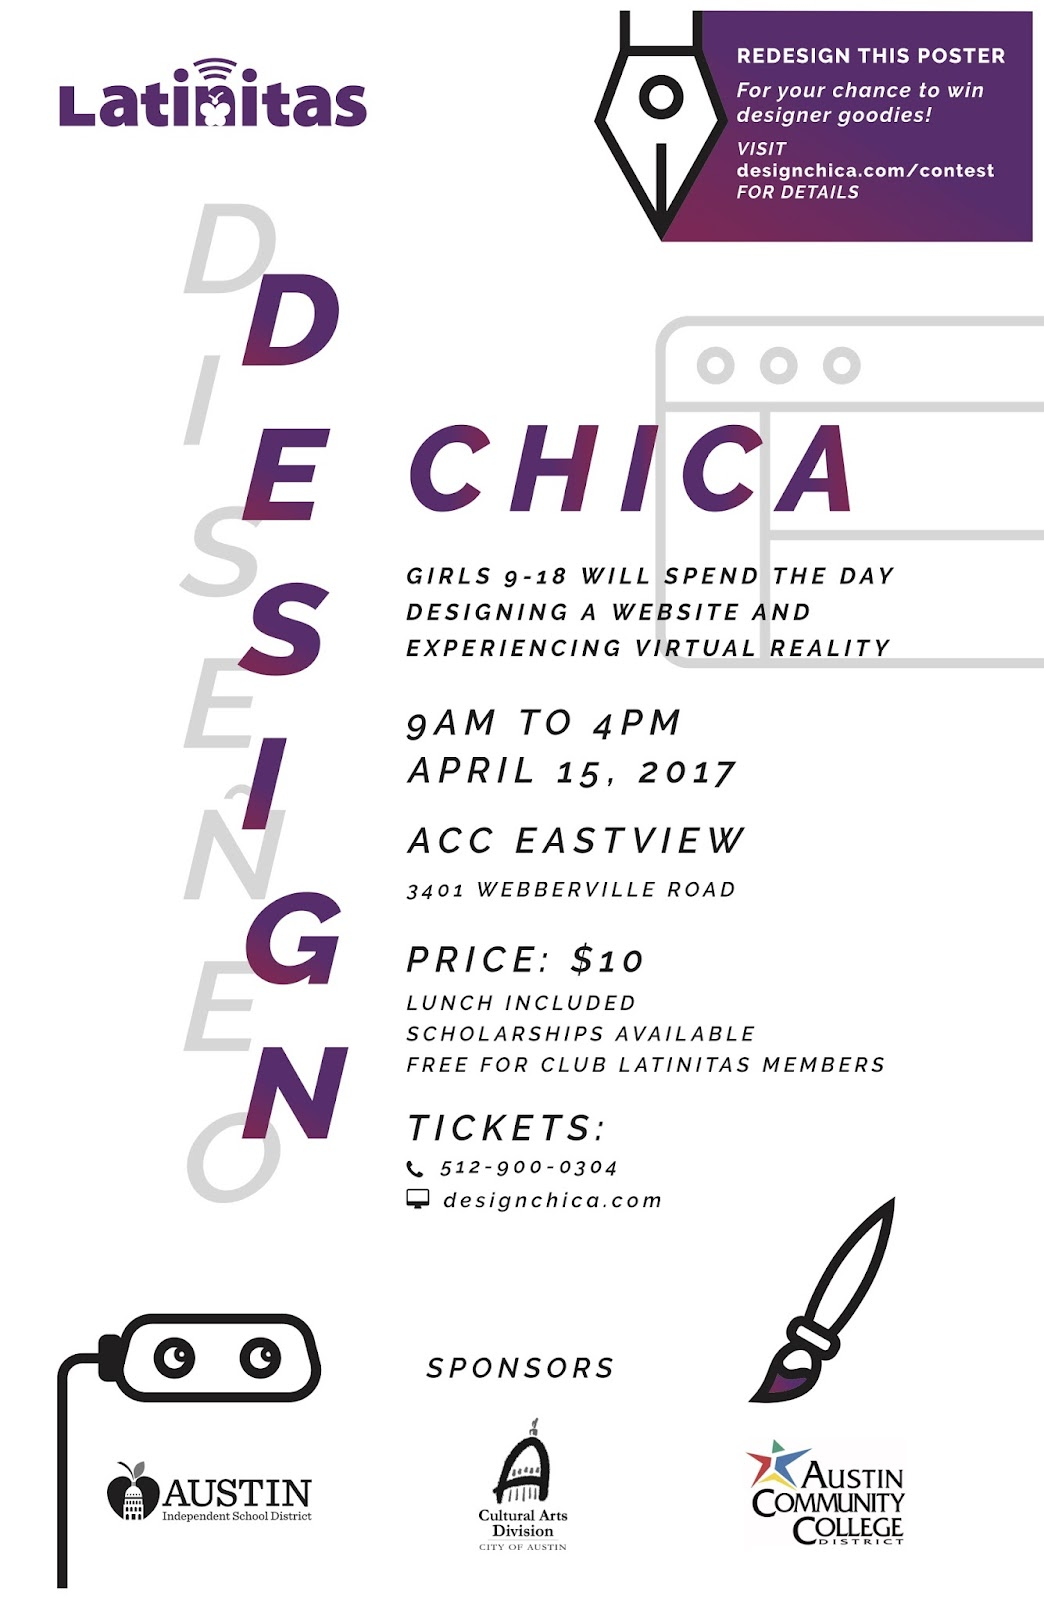 design-chica-poster-contest.jpg